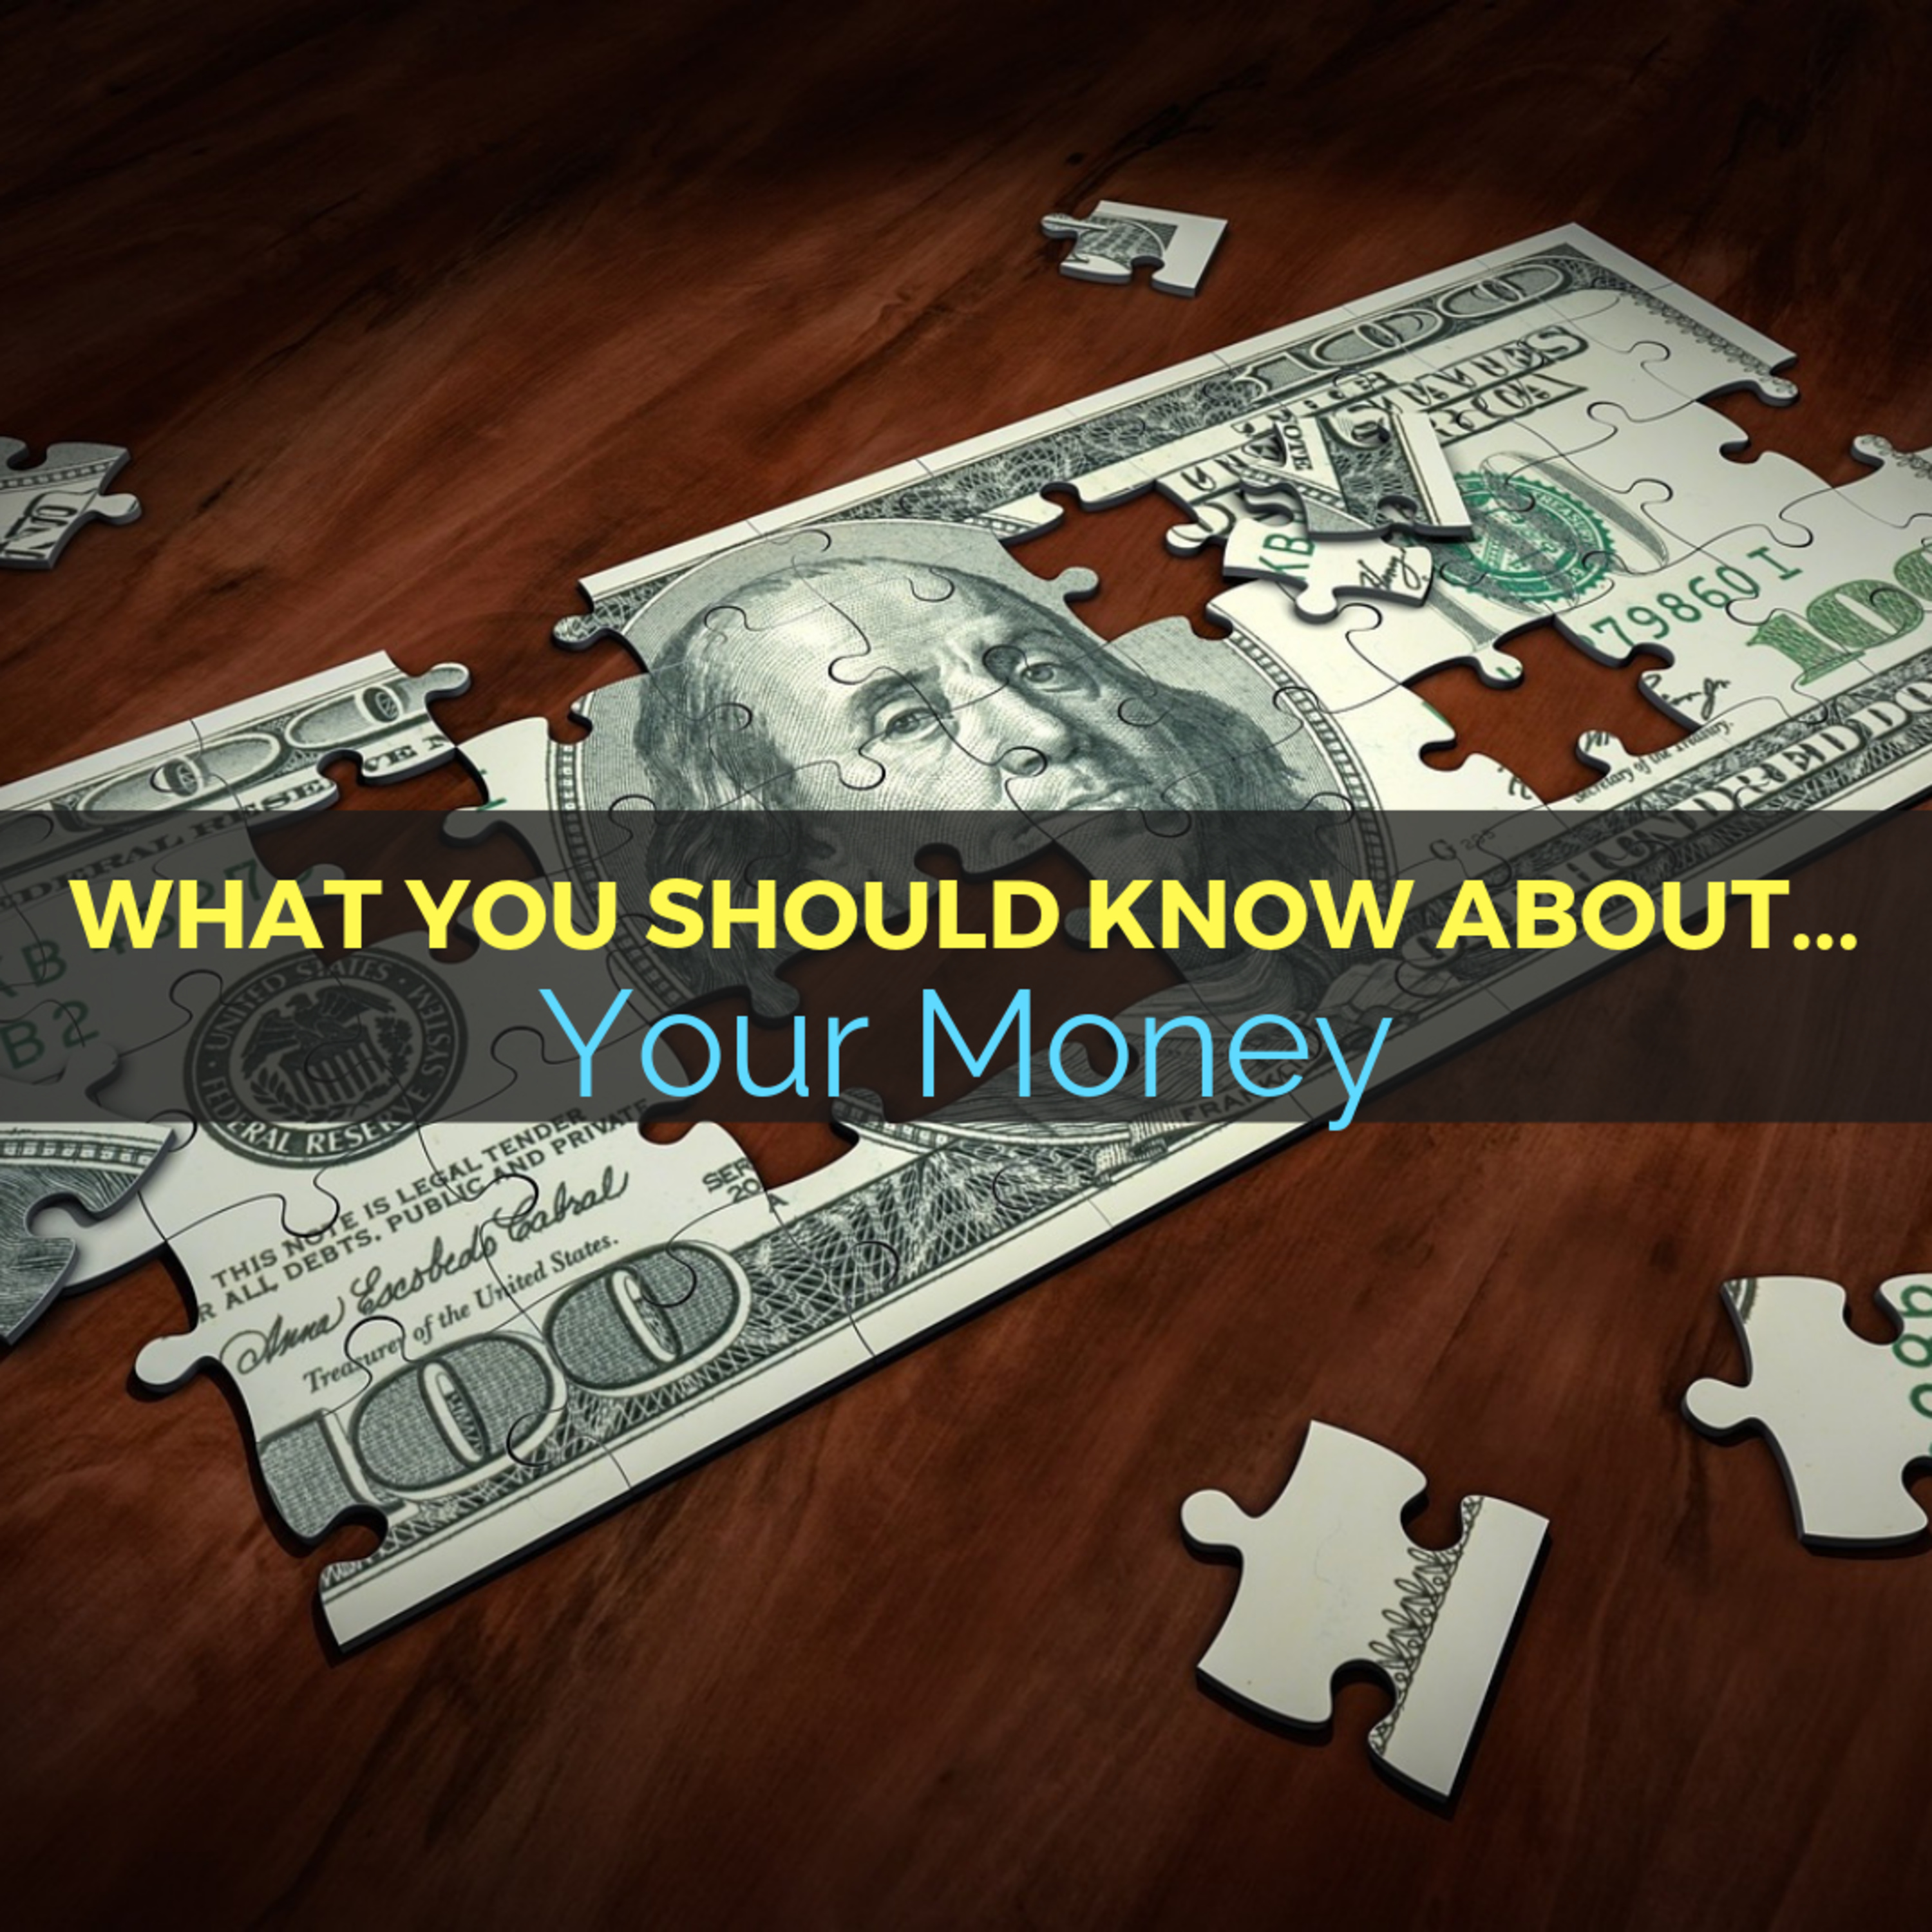 What You Should Know About... Your Money